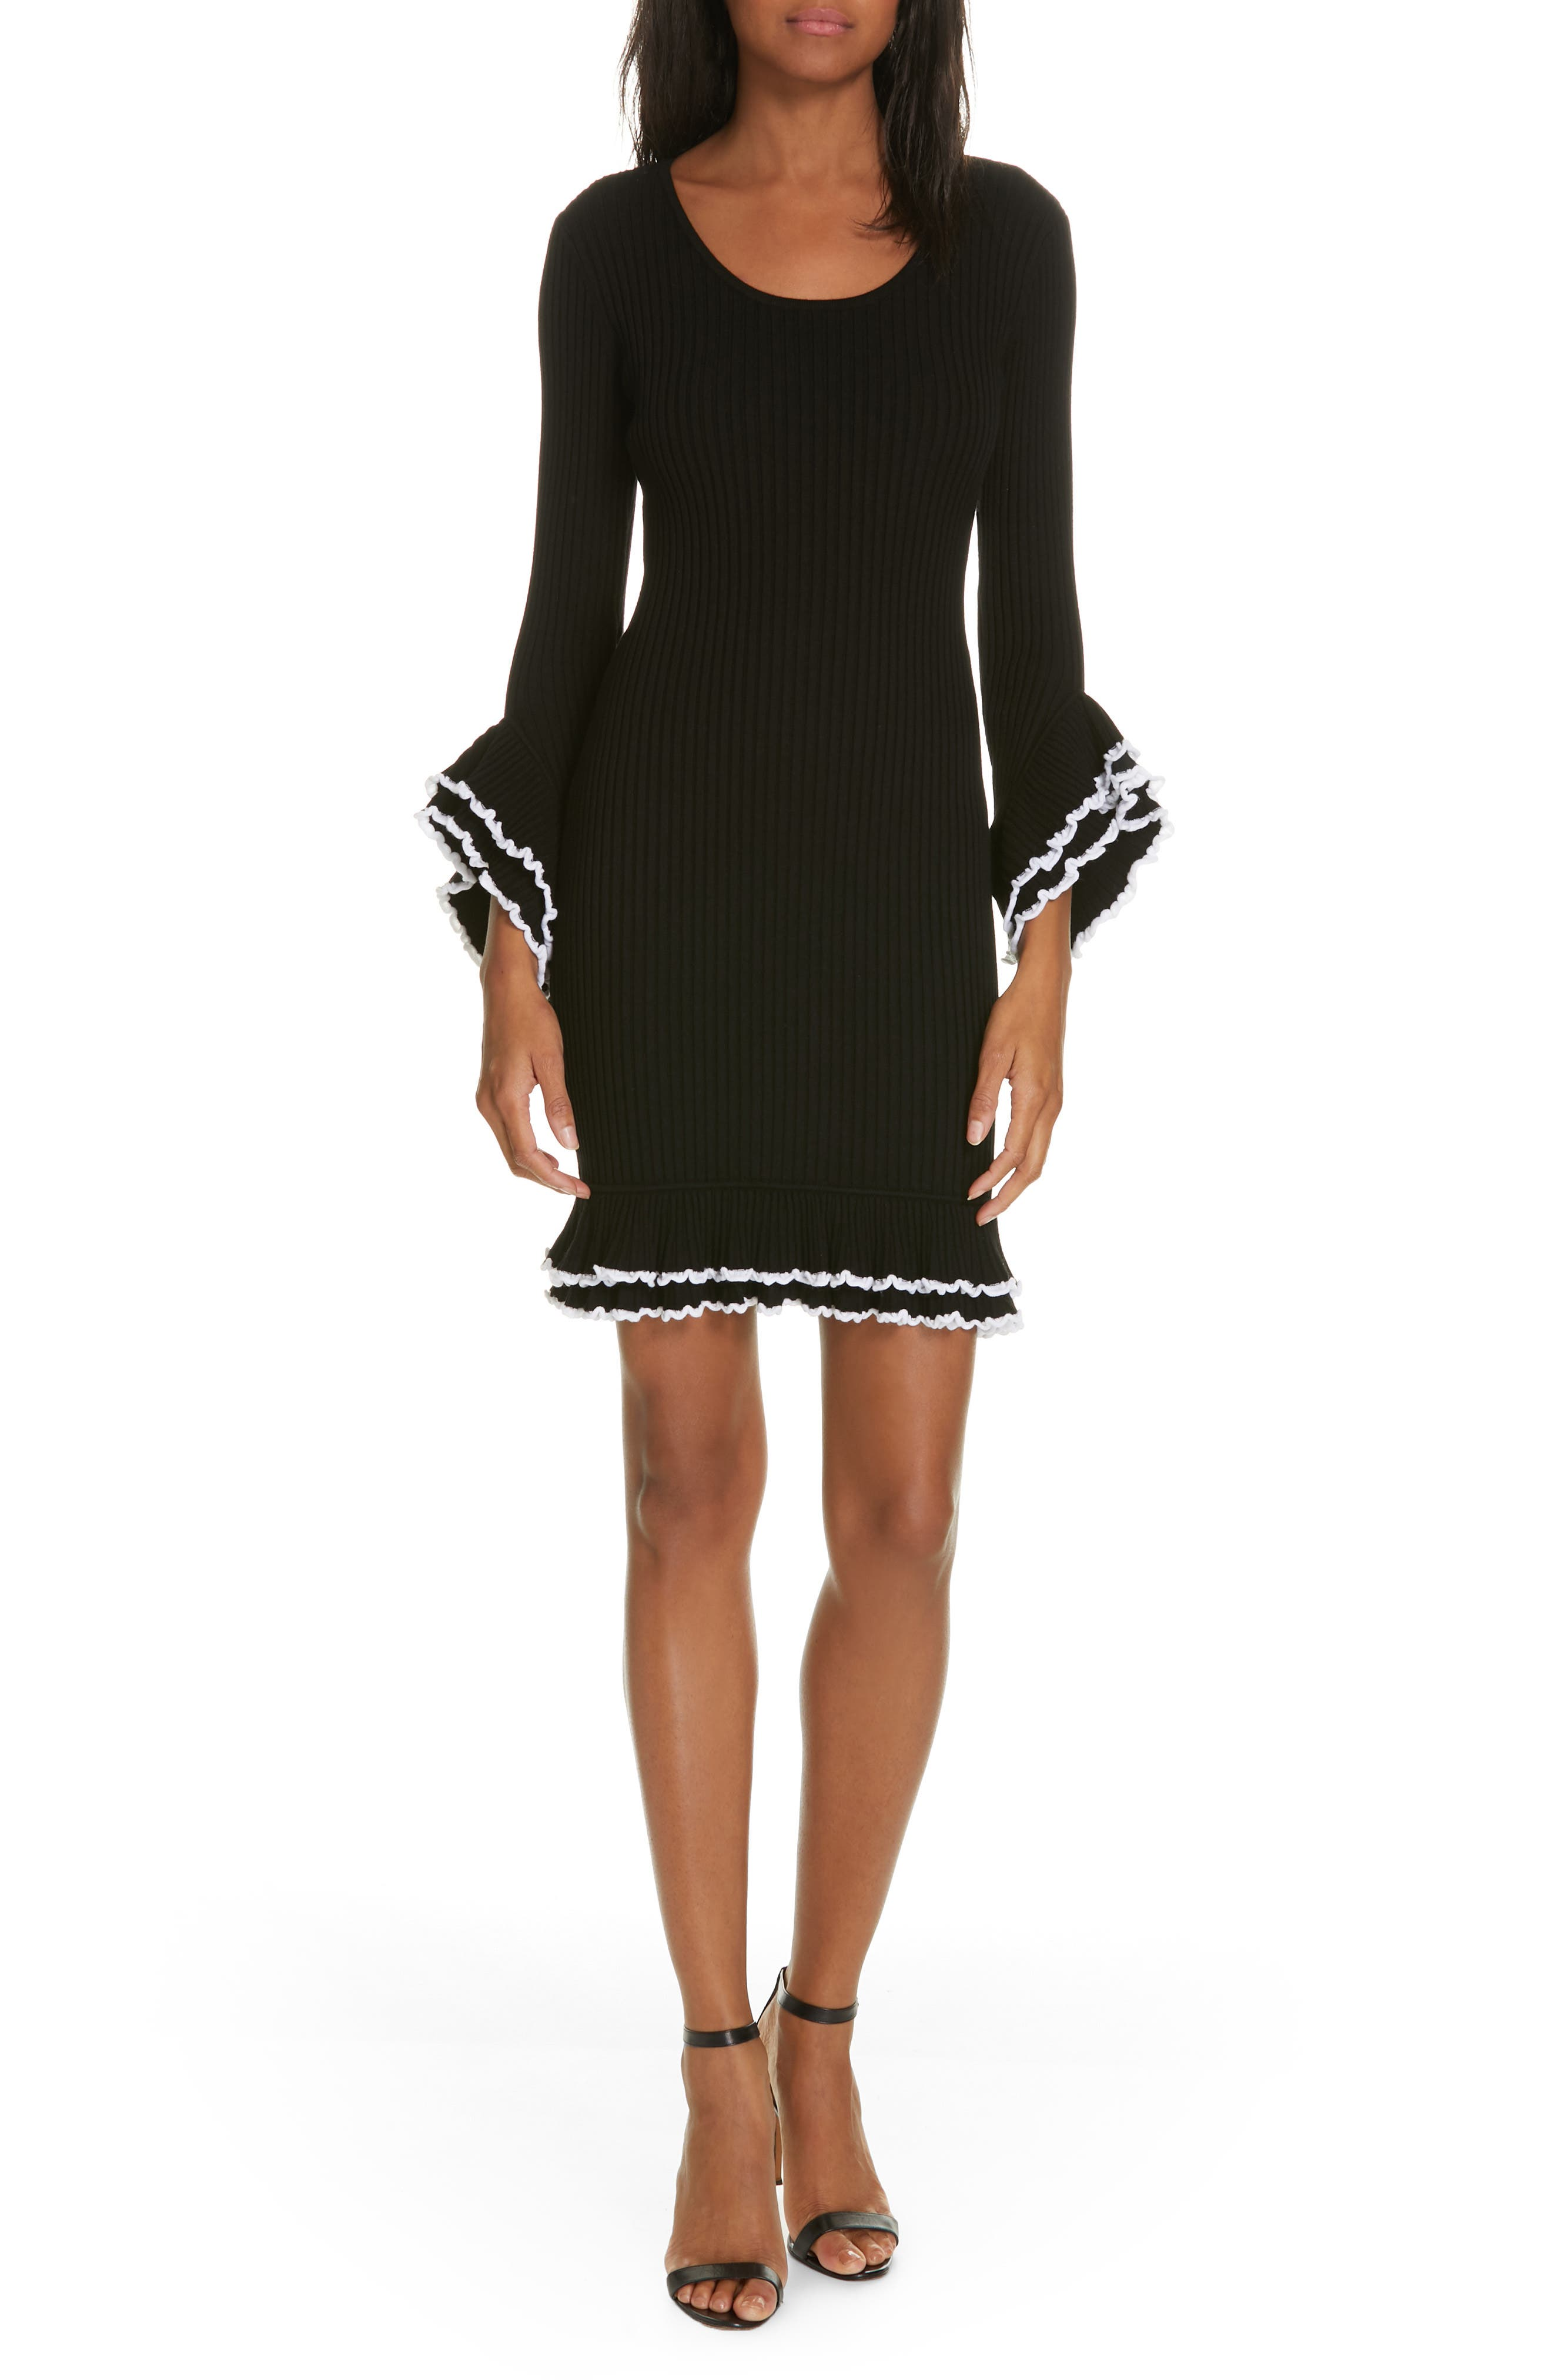 Milly Ribbed Ruffle Detail Dress, Size Petite - Black